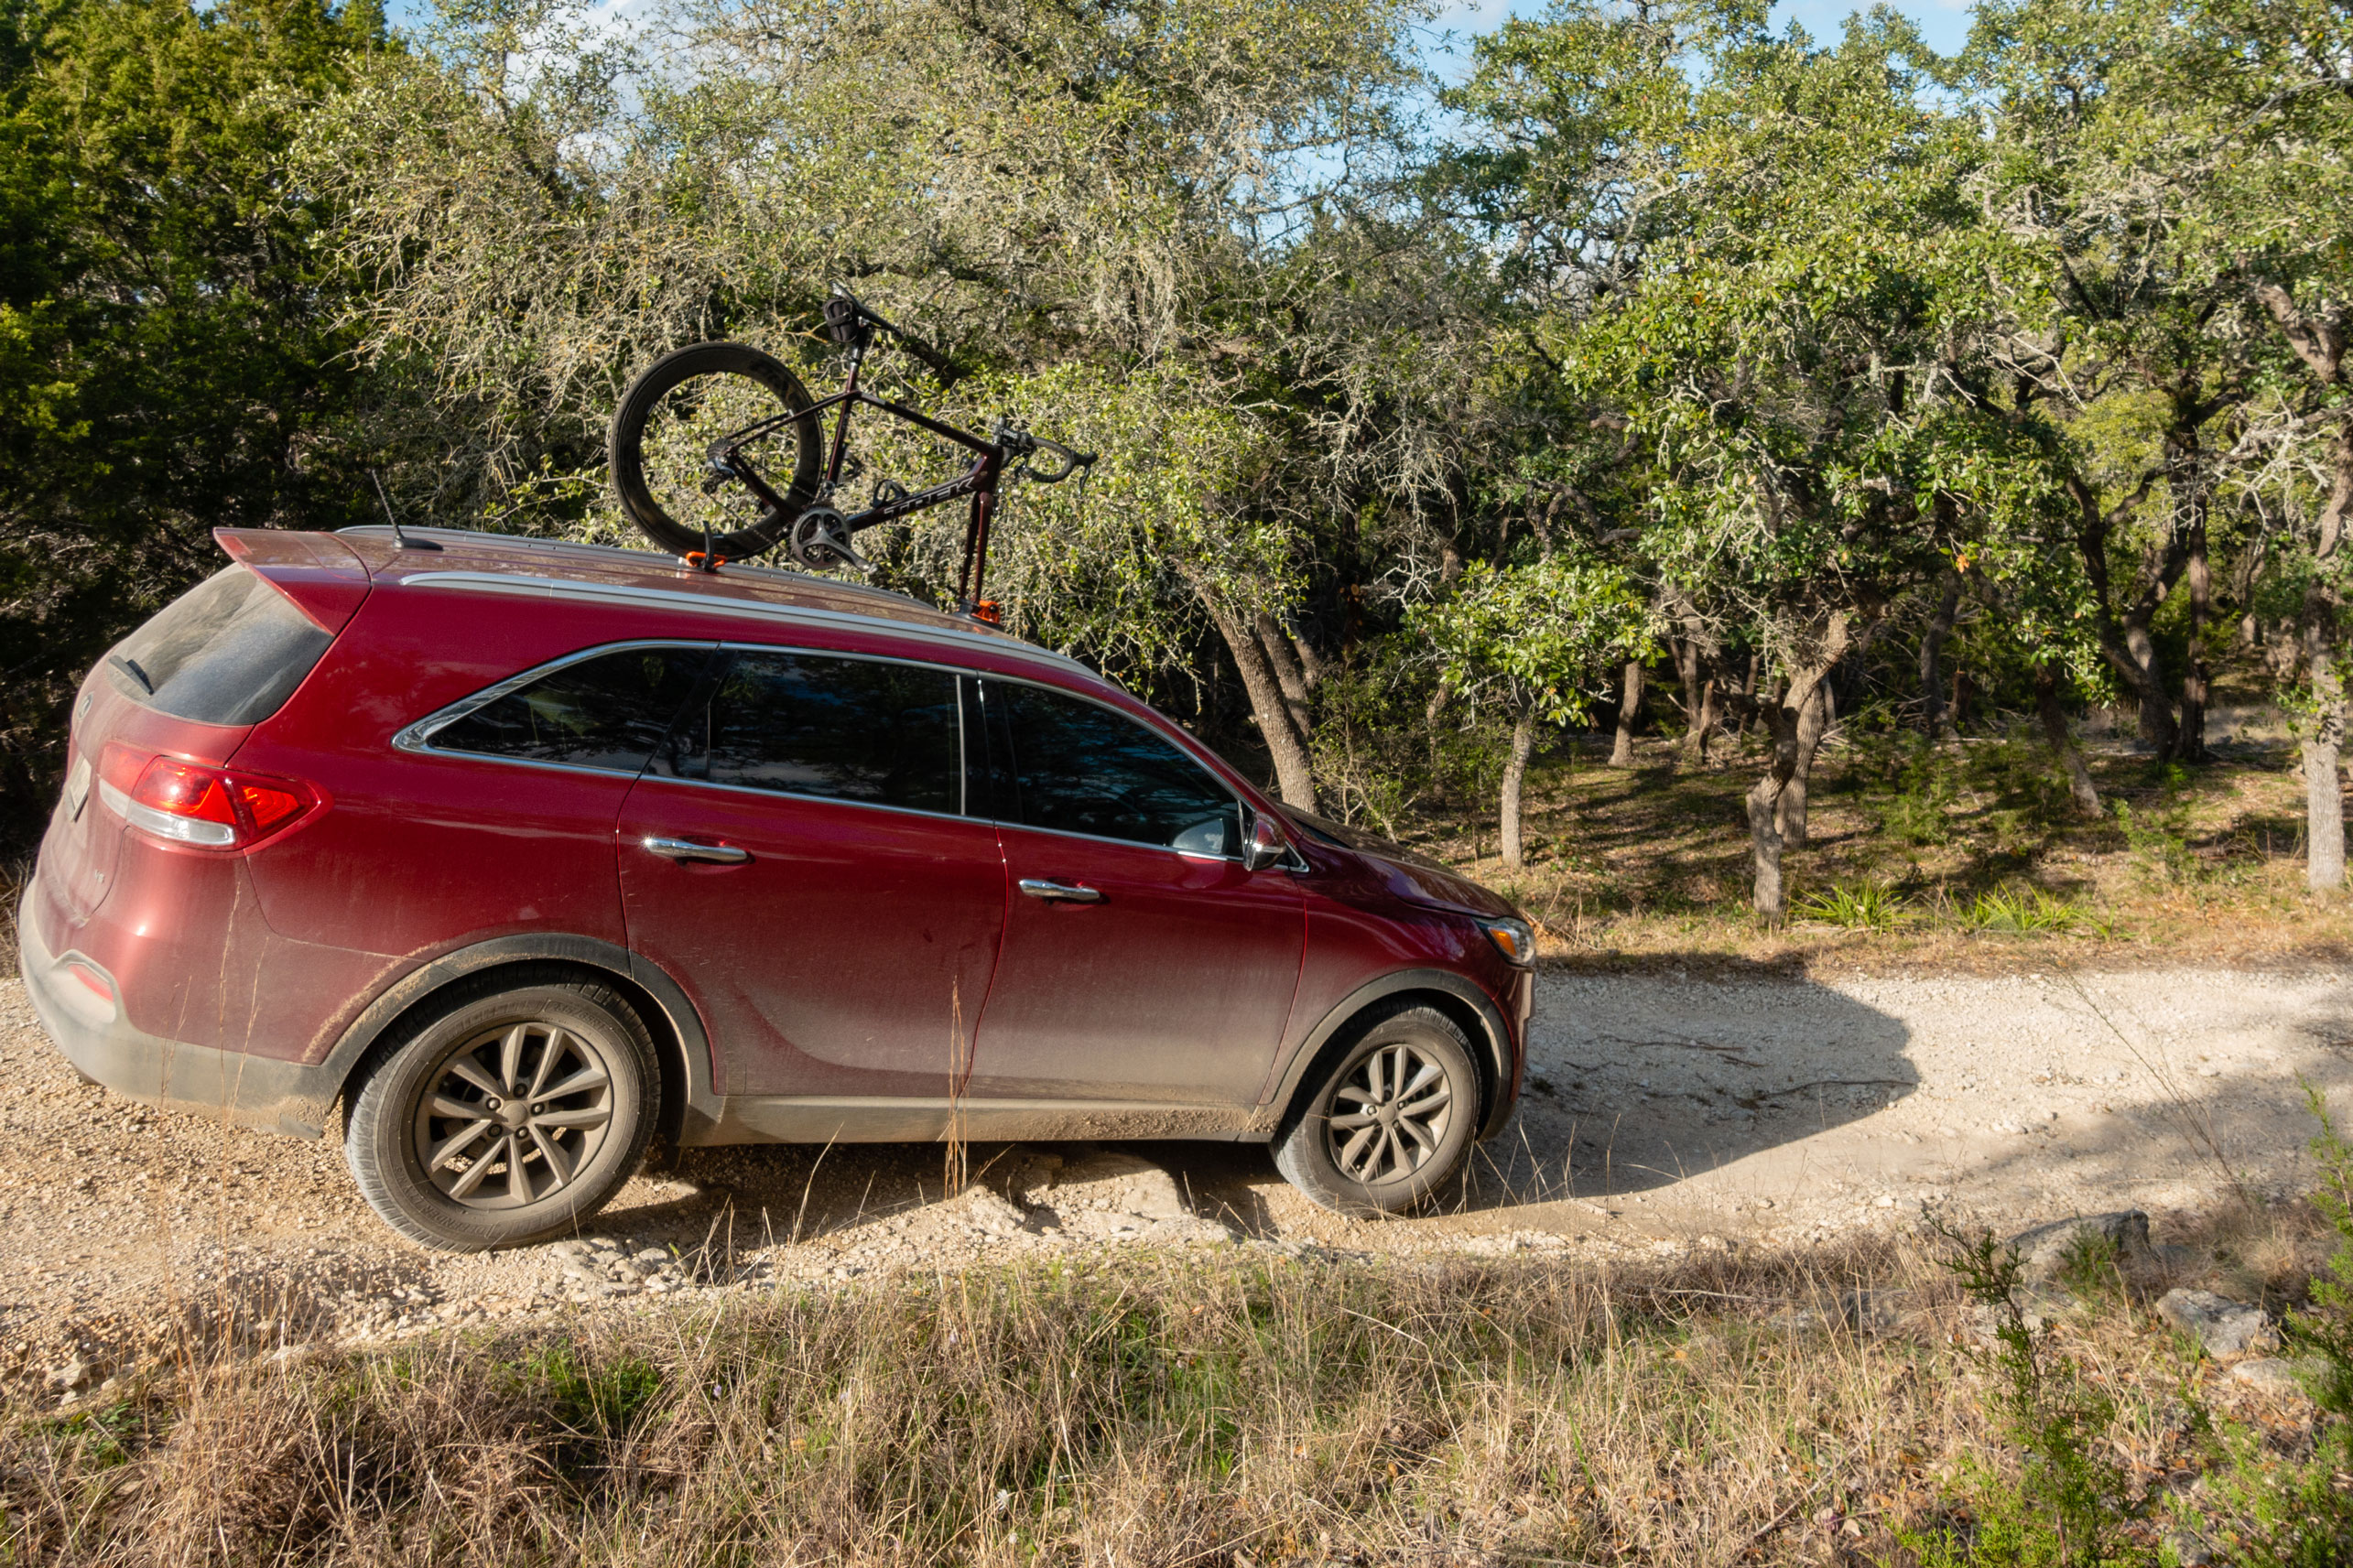 Kupper Mounts Bike Carrier on SUV, dirt road